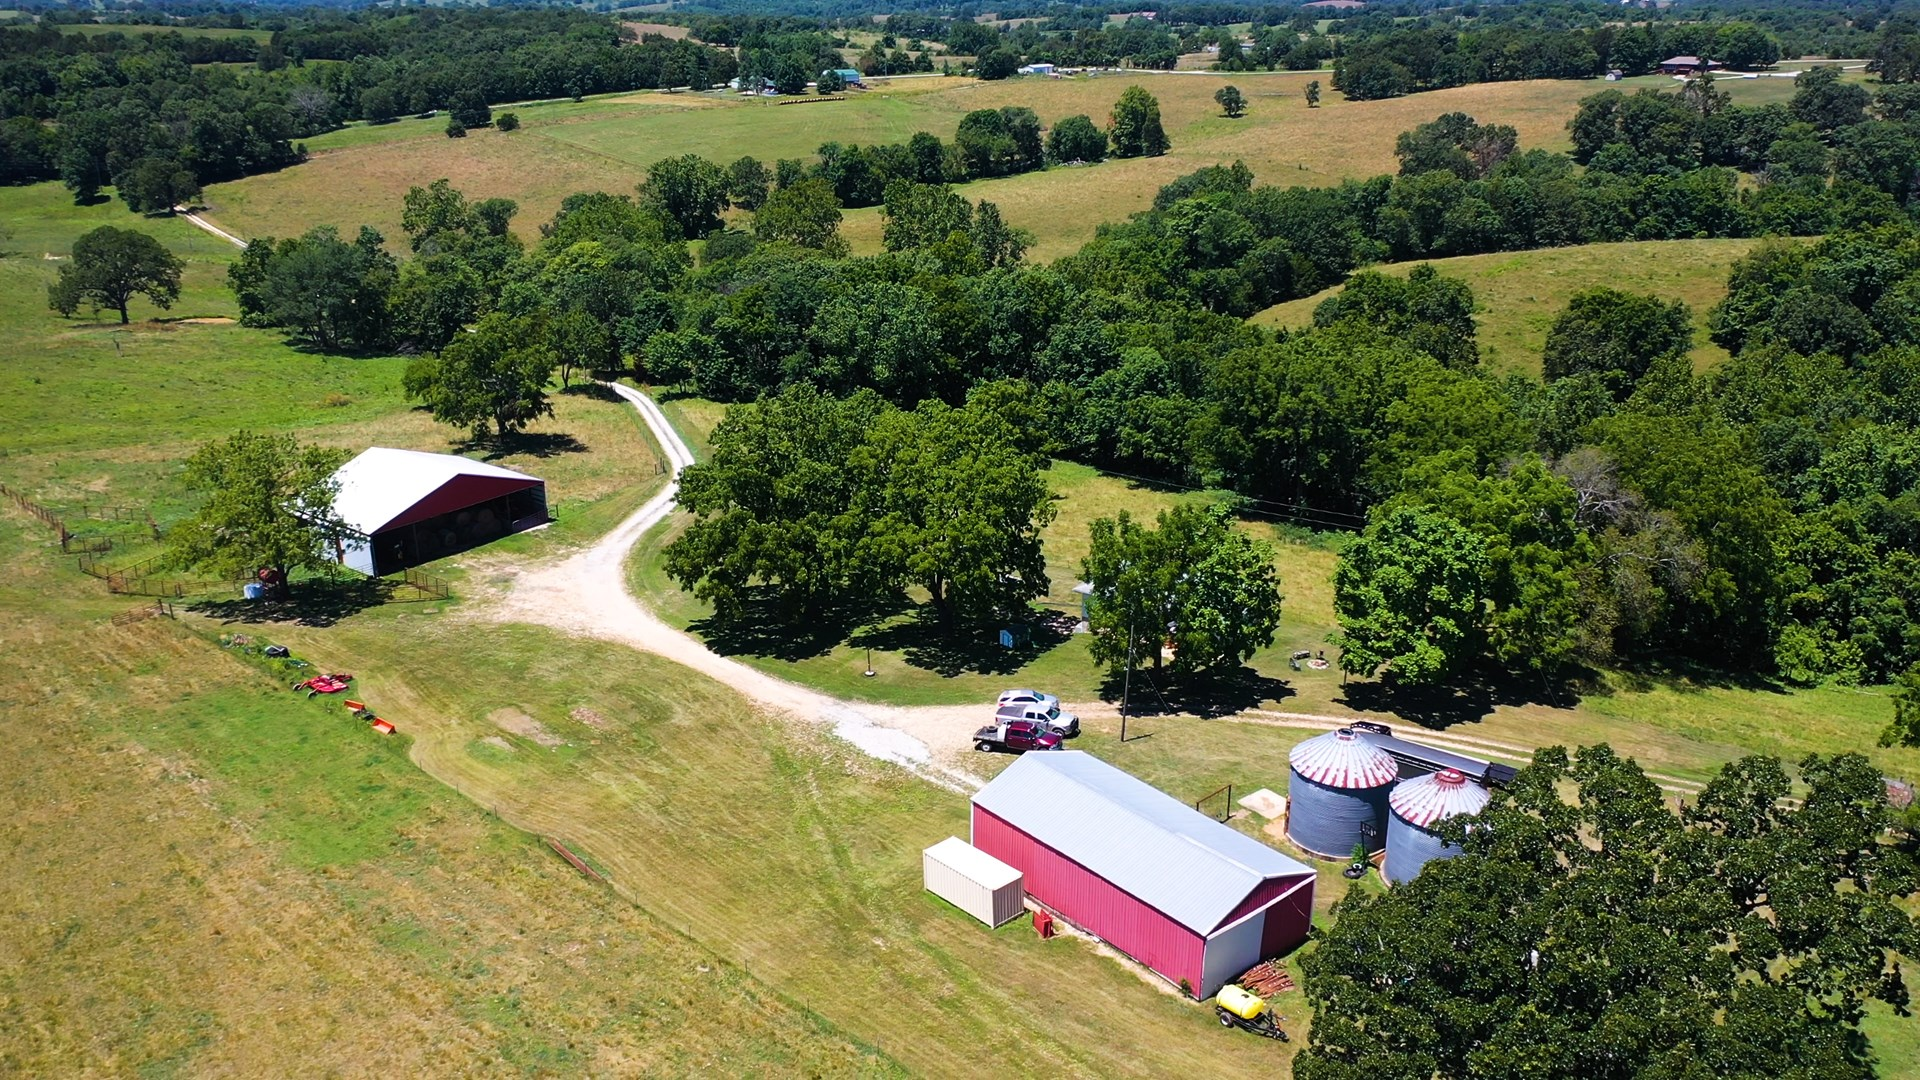 South Central Missouri Cattle Ranch and Grass Farm For Sale